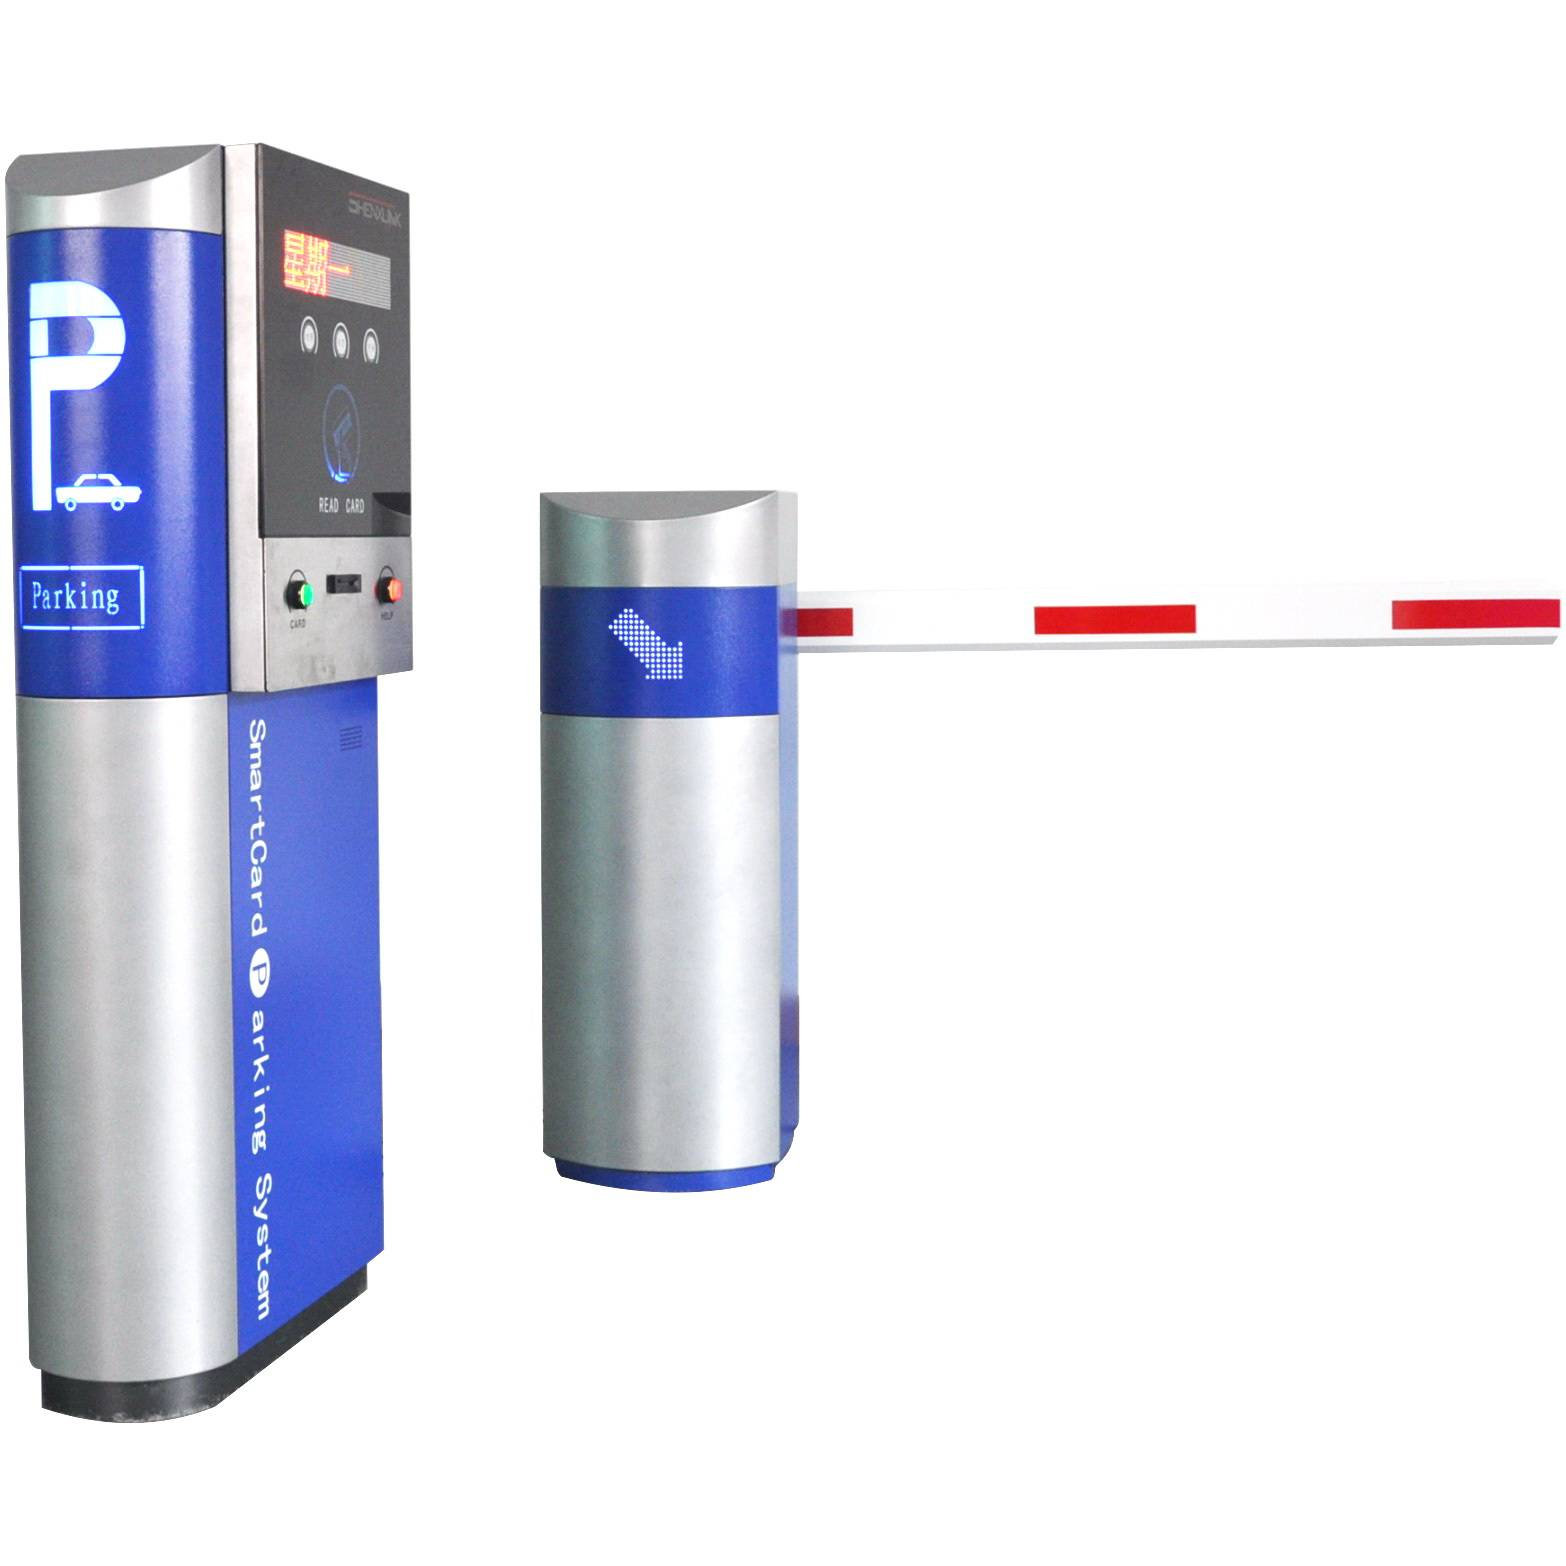 Multiple Car Parking System For Shoping Centers